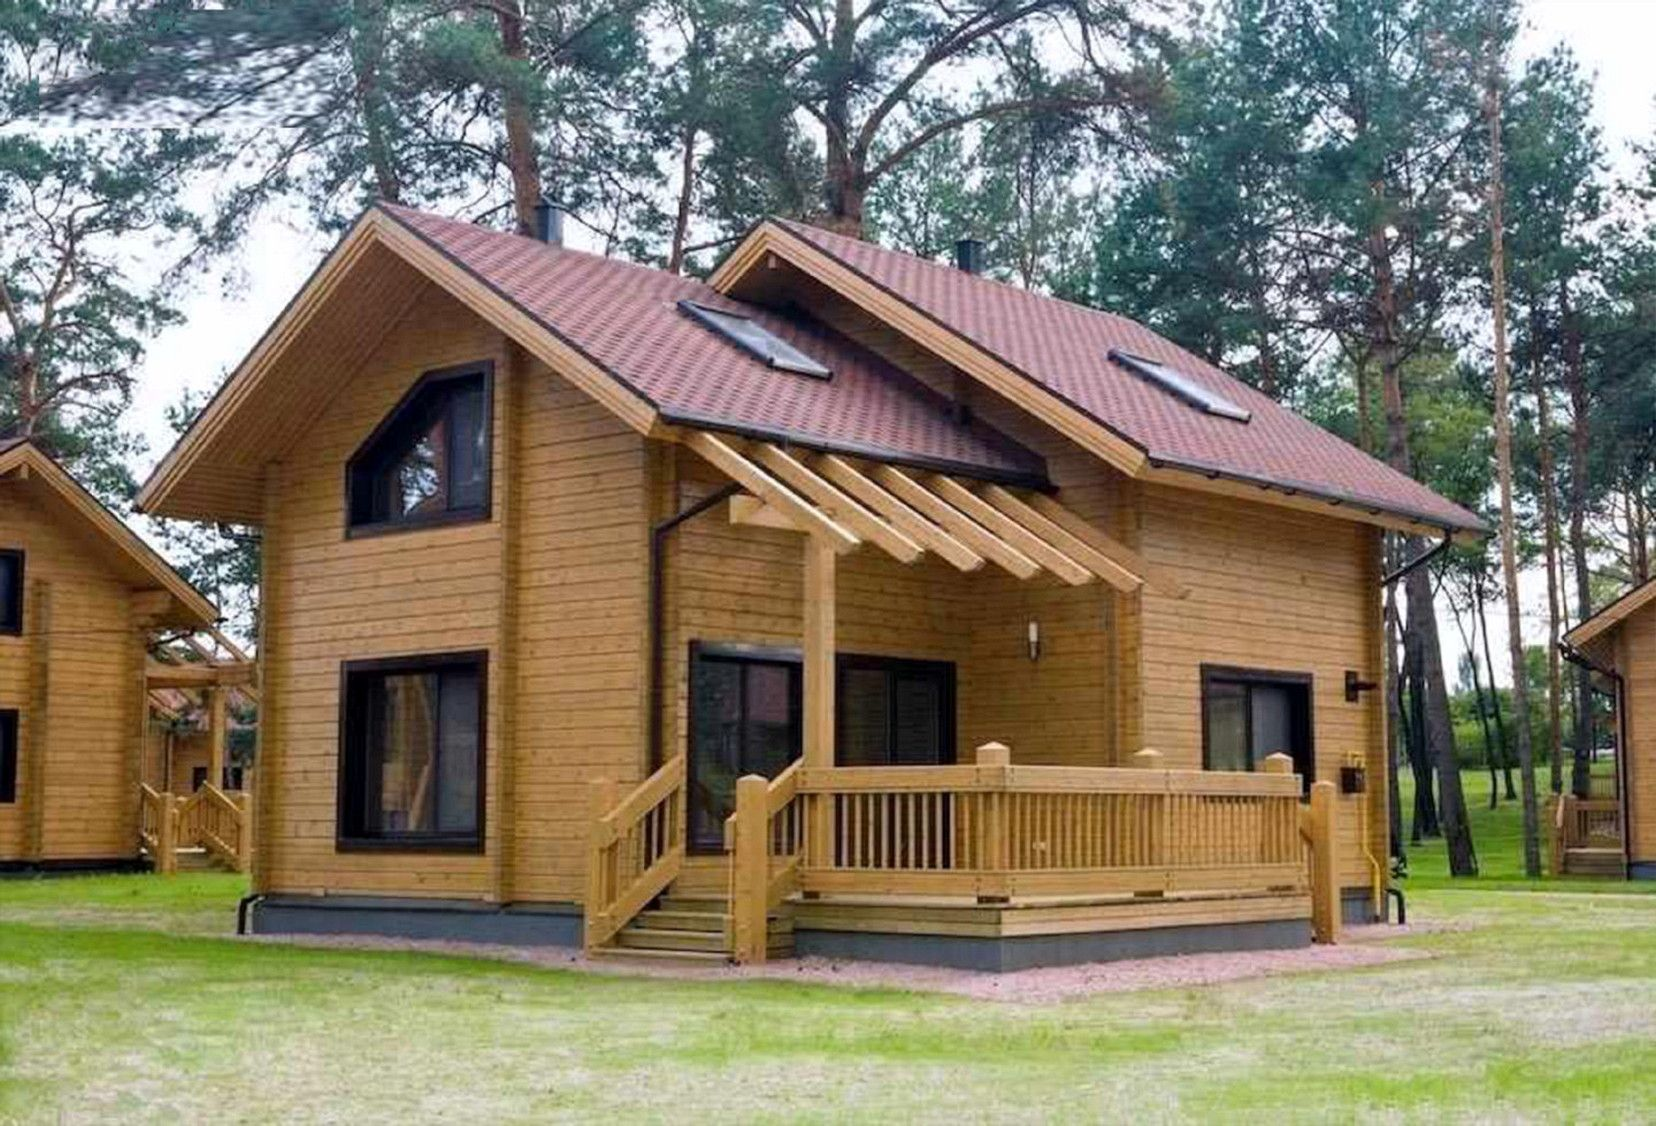 20 Awesome Wood Villa Design Ideas Wooden House Design House